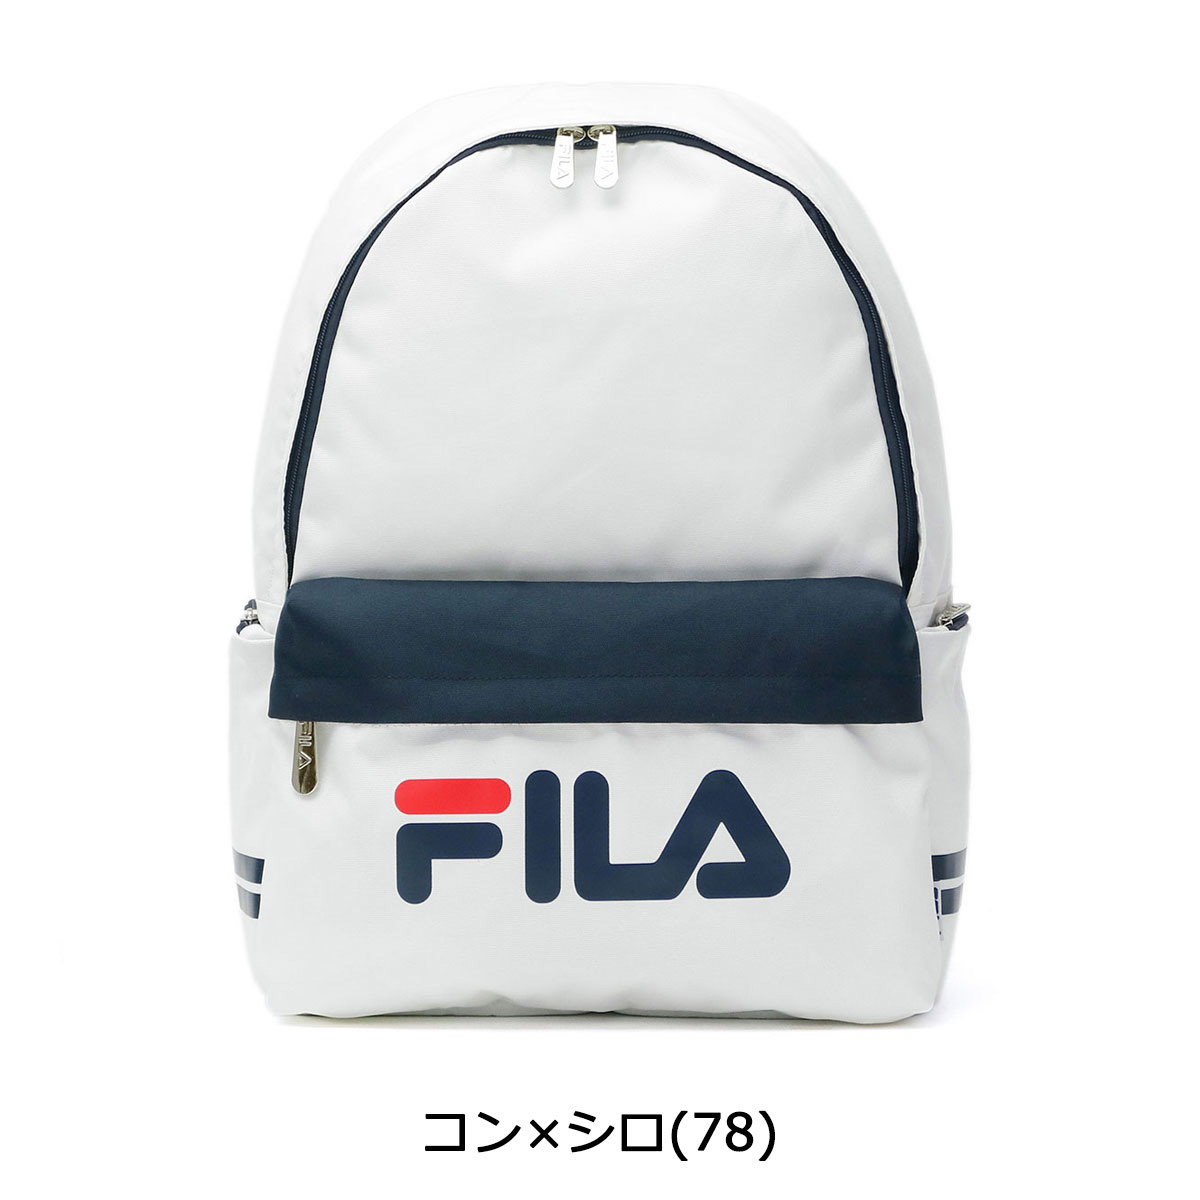 Fila Backpack Commuter School Bag B4 Men S Las 7494